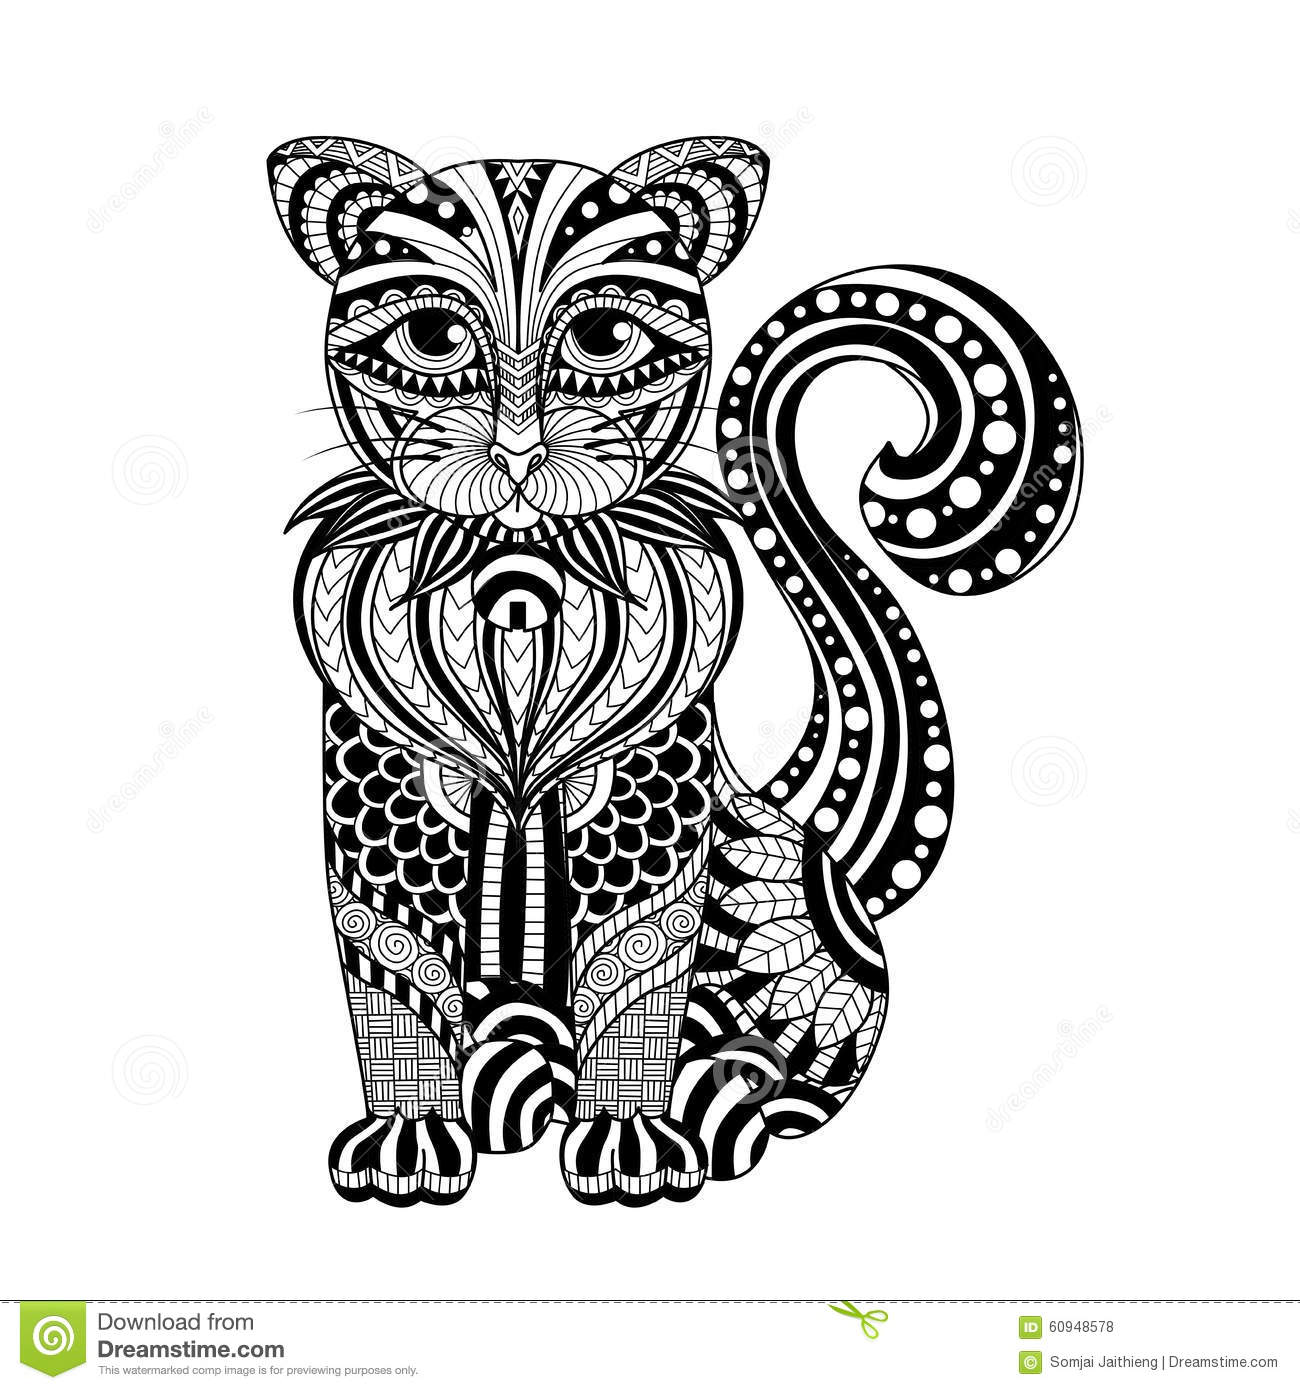 Free coloring pages of maori pattern